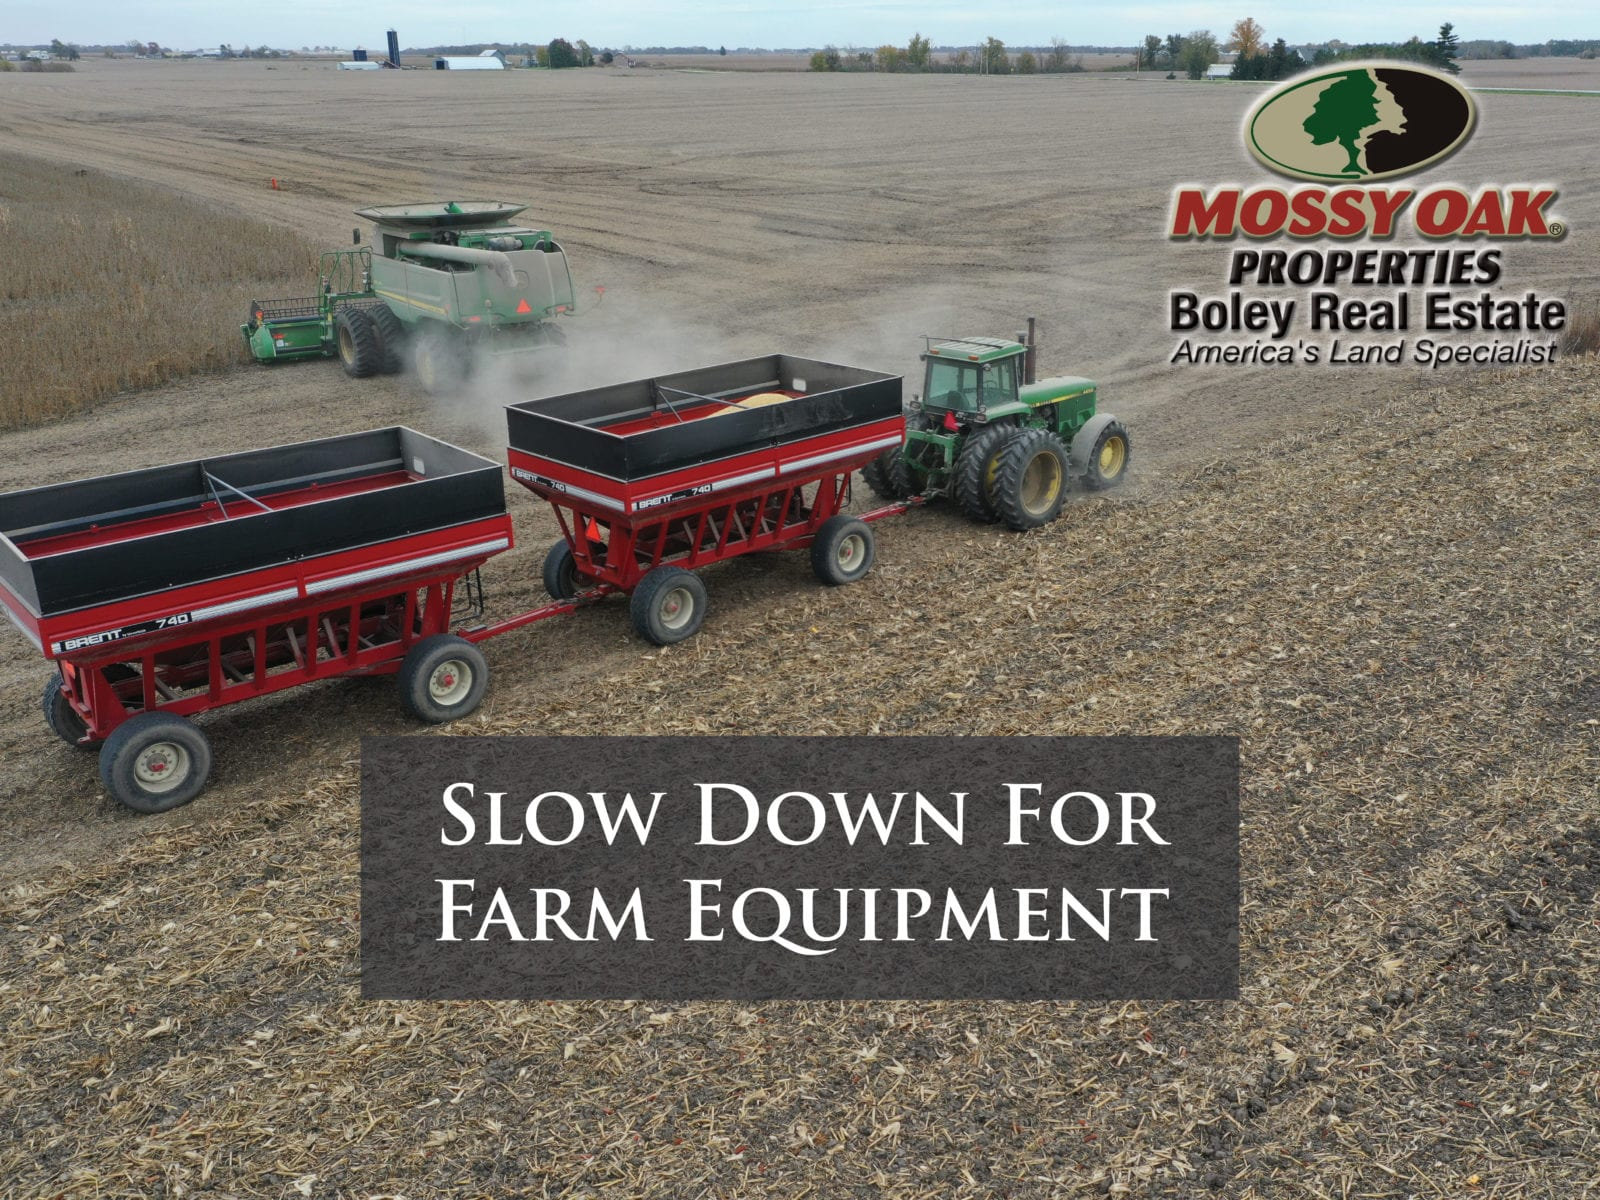 It is harvest season, time to slow down.